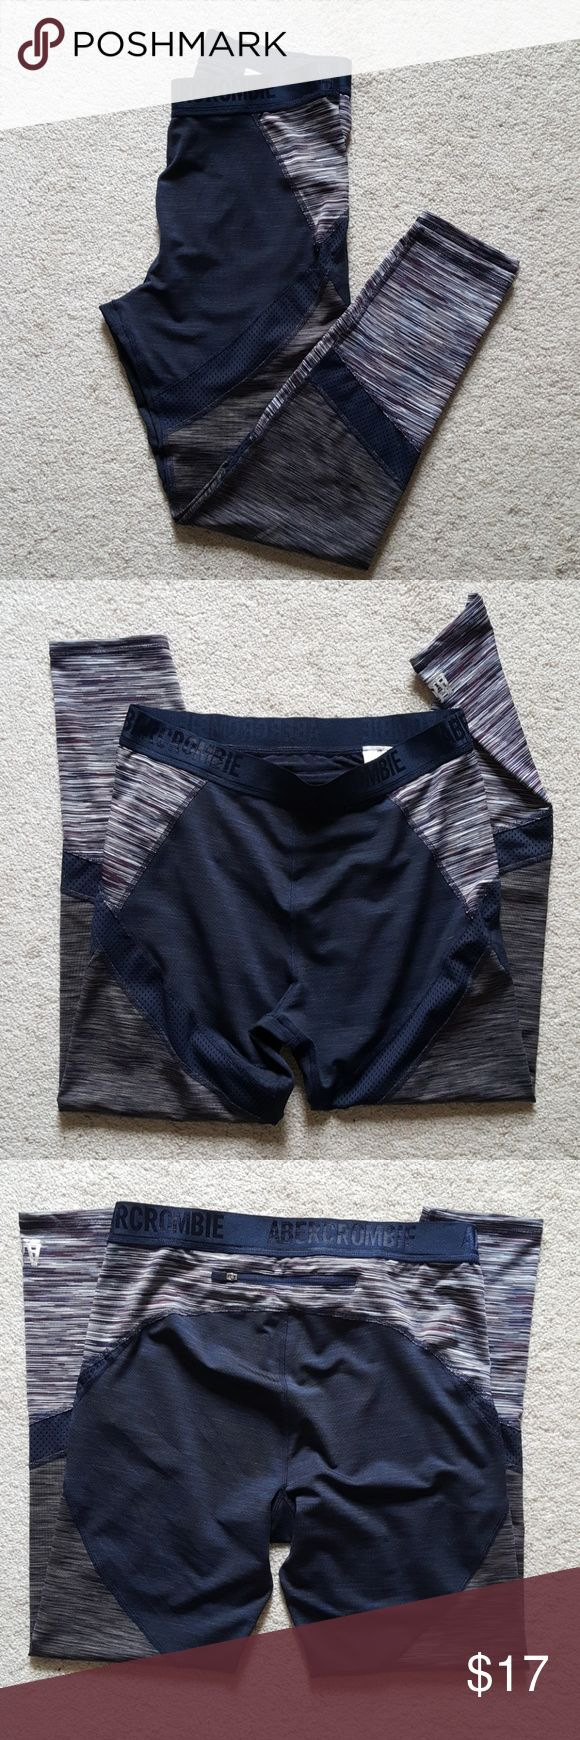 Abercrombie and Fitch Athletic Bottoms Abercrombie and Fitch Athletic Bottoms. Netted lined details throughout. Excellent condition. Stretch waist. Small zip pocket in the back for keys, etc. Metallic A&F logo on bottom of leg. 94% Polyester. 6% Elastane. Abercrombie & Fitch Pants Leggings